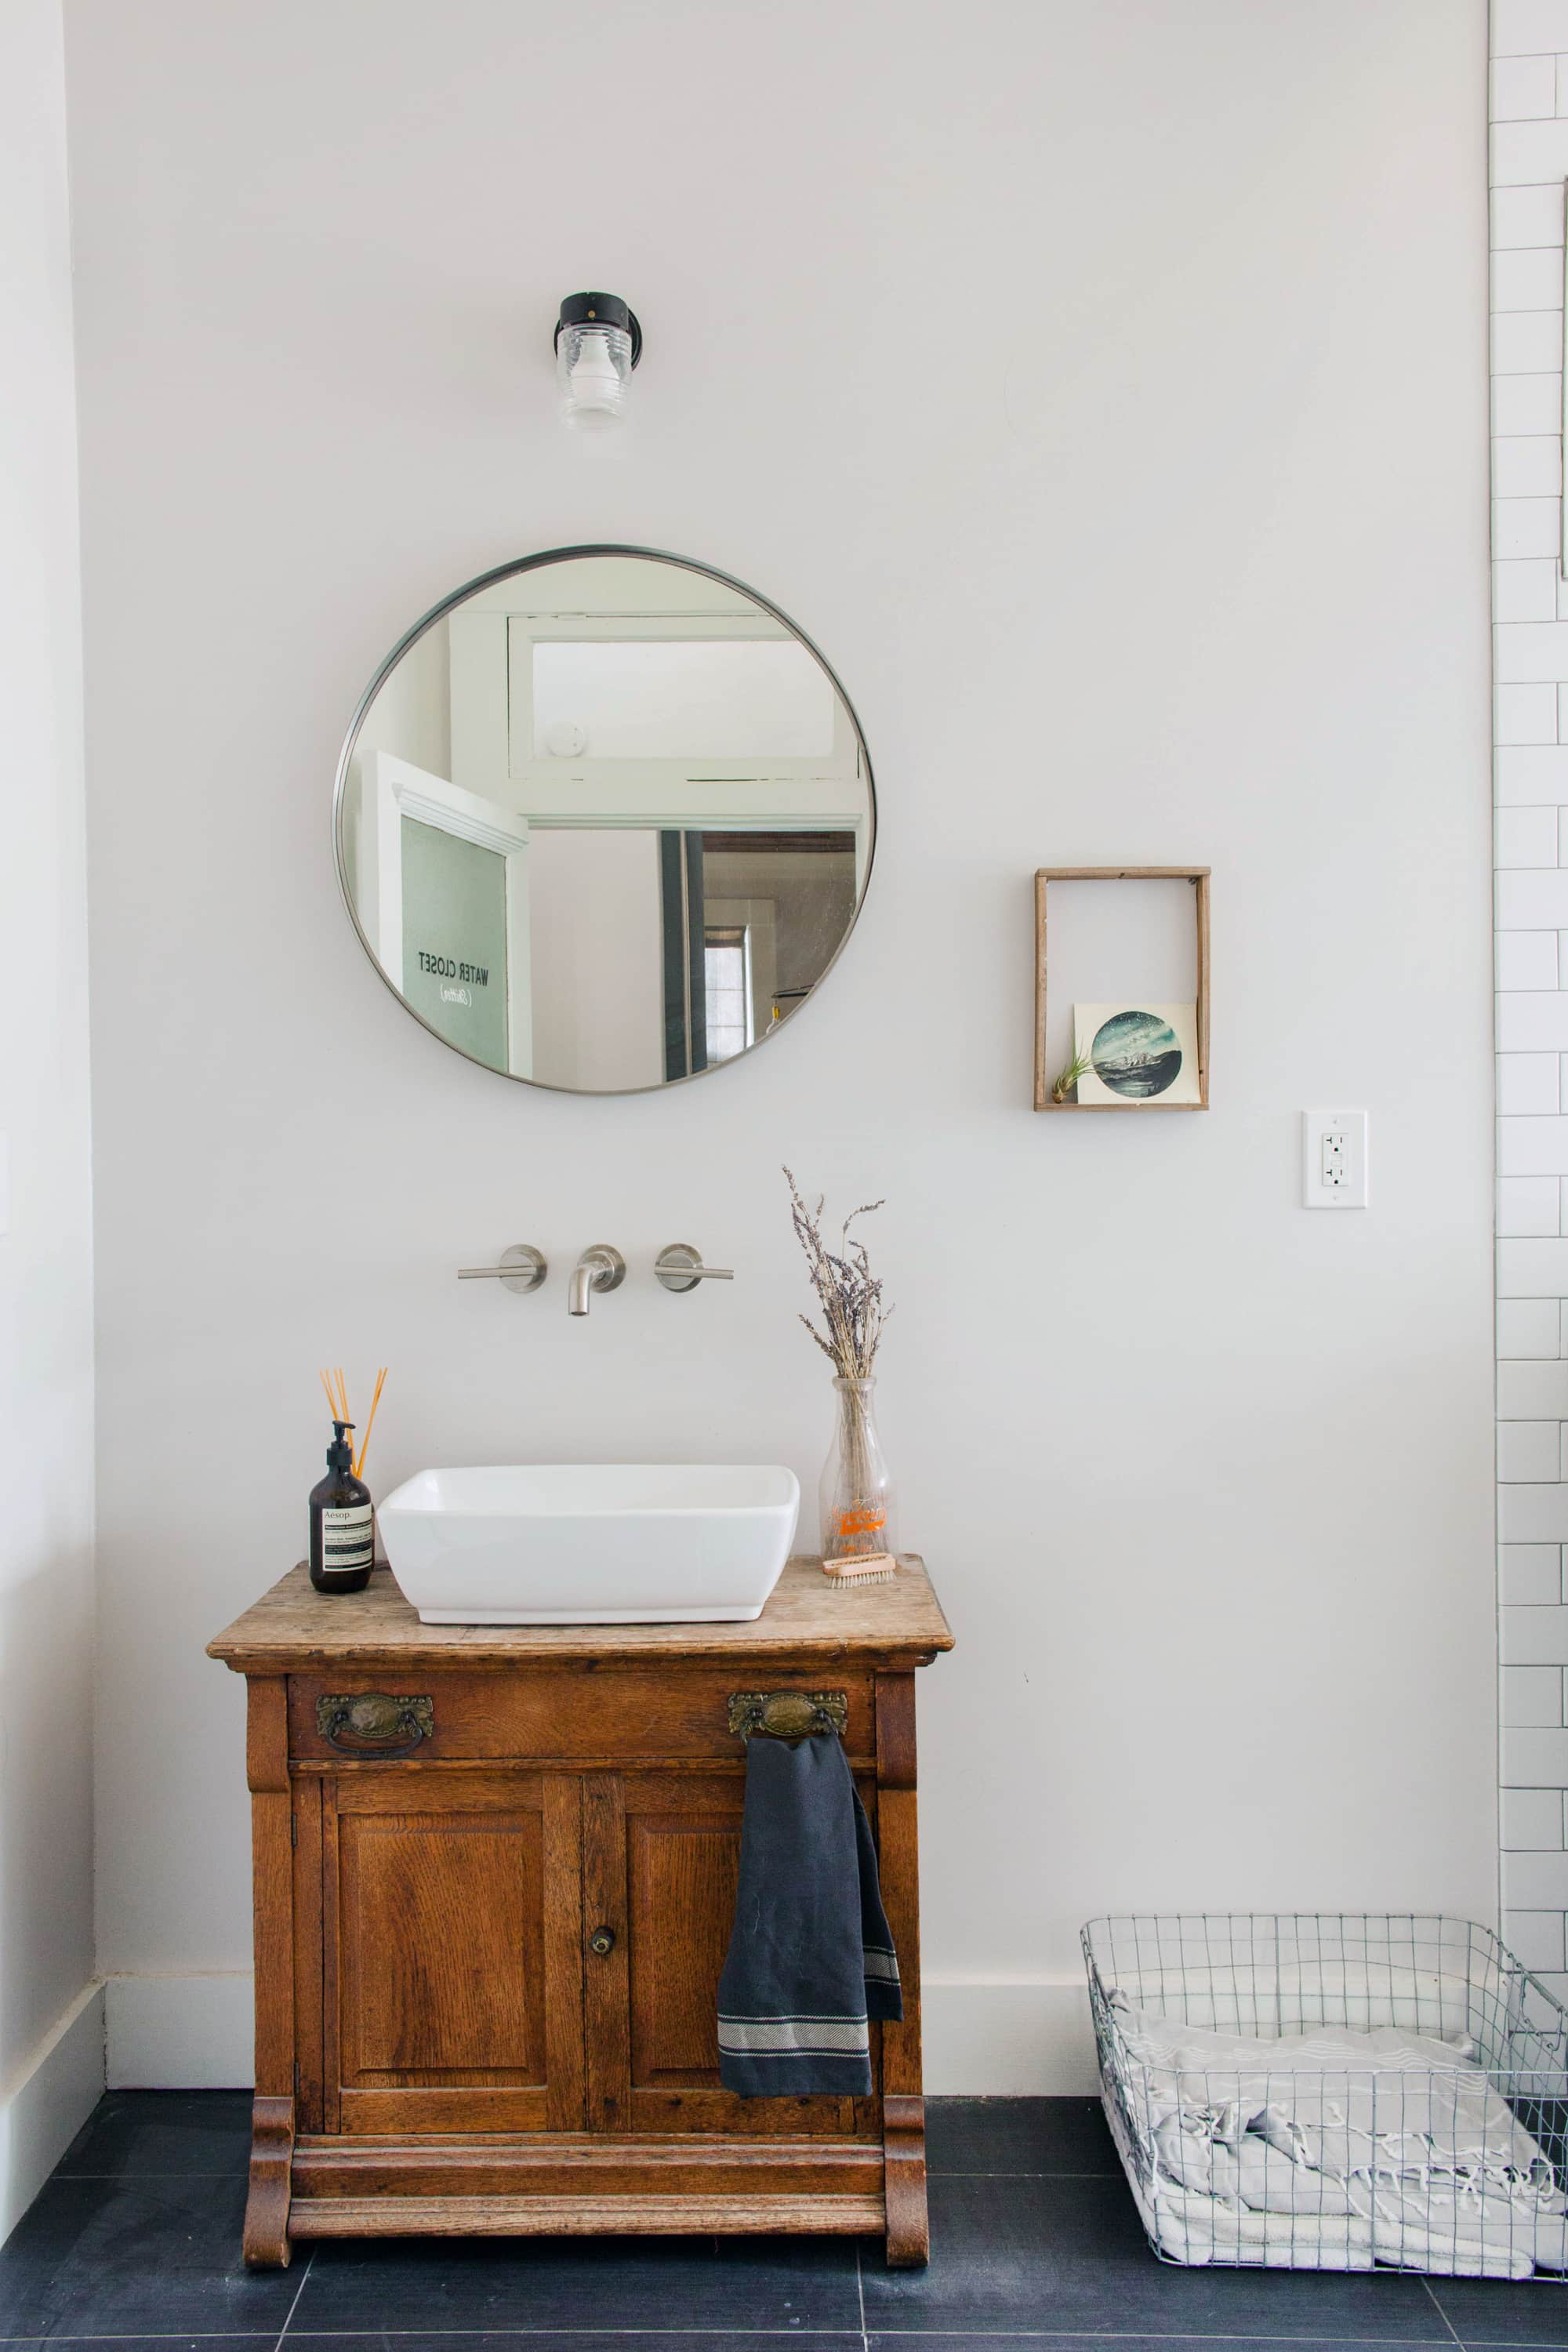 House Tour: Industrial,texas Minimalism In East Austin Throughout Austin Industrial Accent Mirrors (Image 14 of 30)